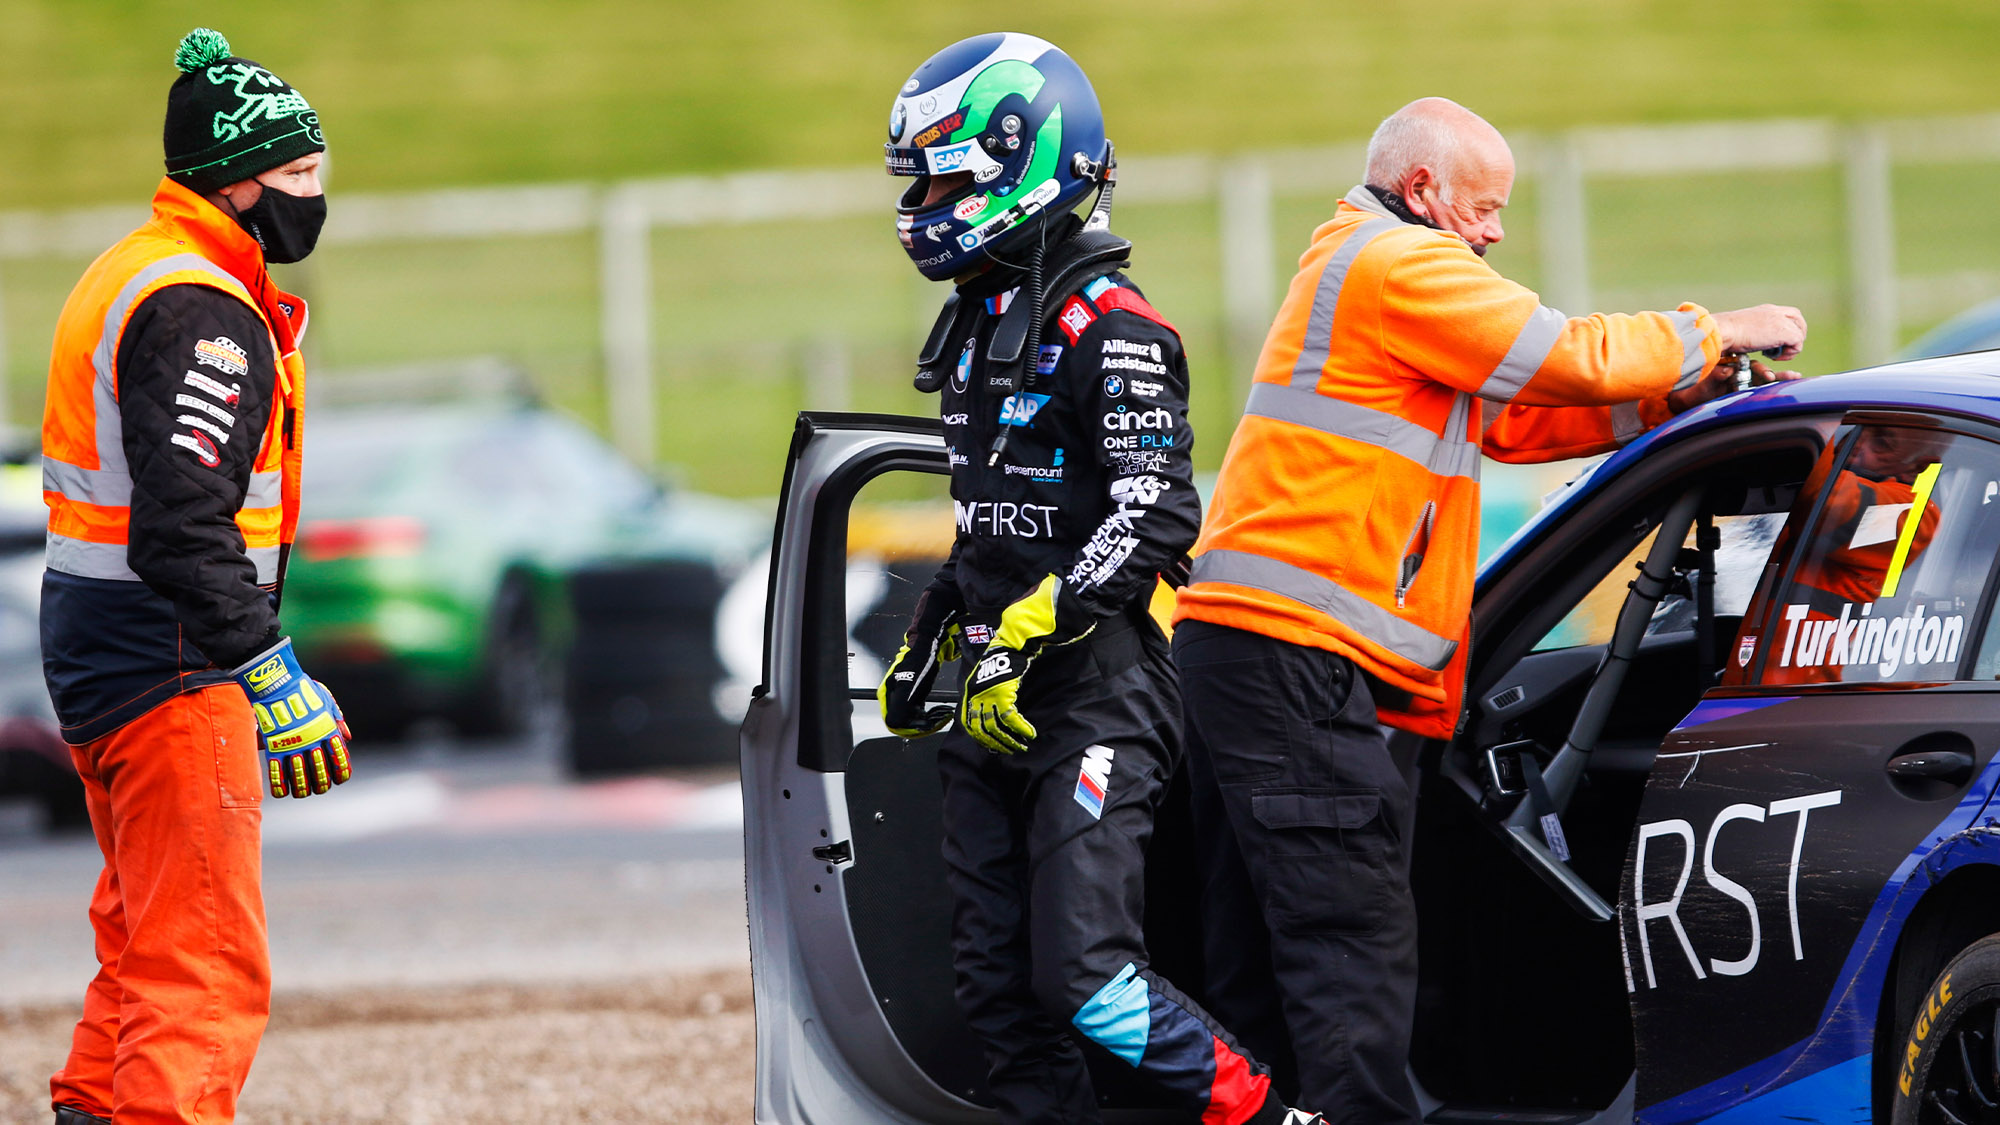 Colin Turkington walks away from his BMW after crashing out of the 2020 BTCC Croft Round